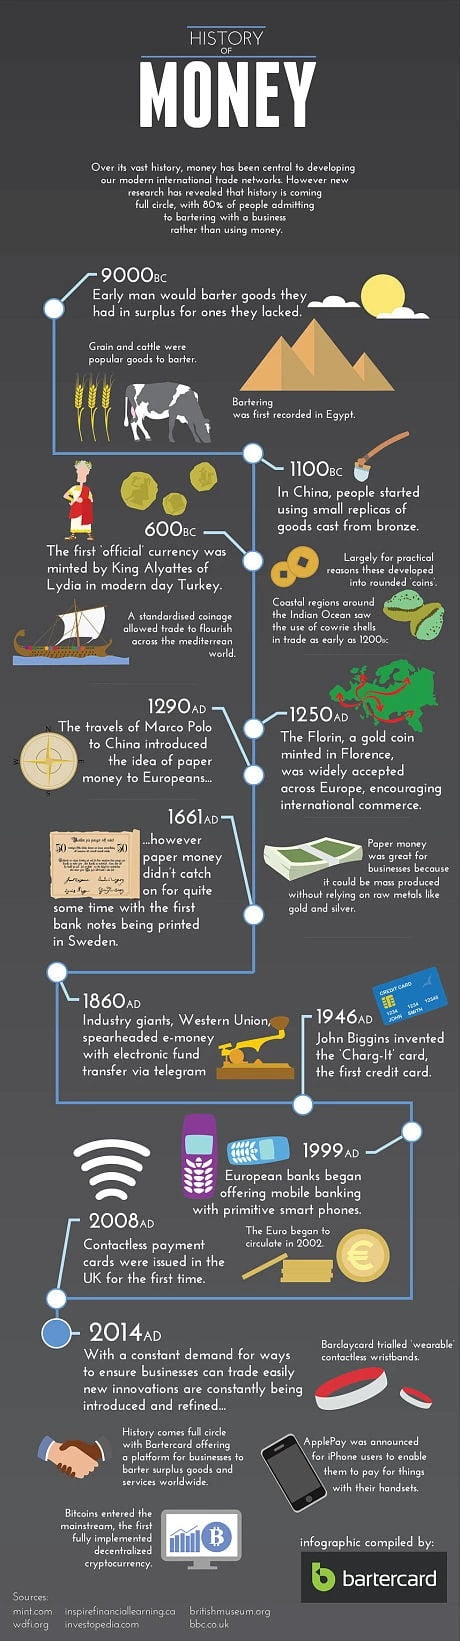 The Evolution and Future of Money